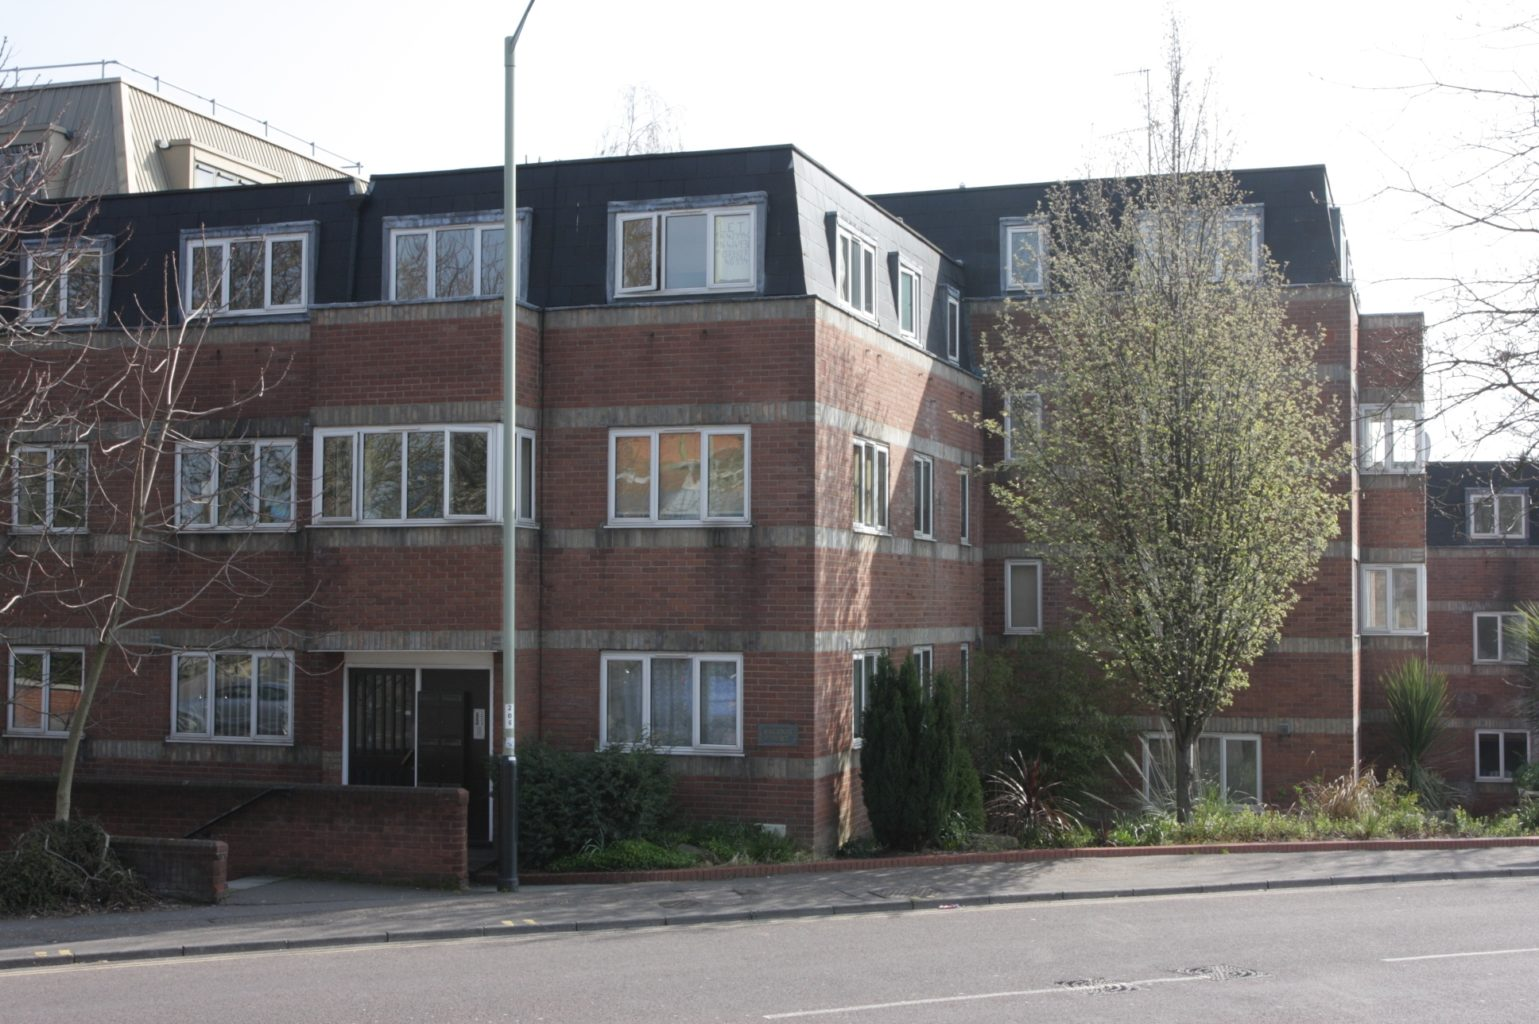 Aparment or let in the norwich area, Raleigh Court